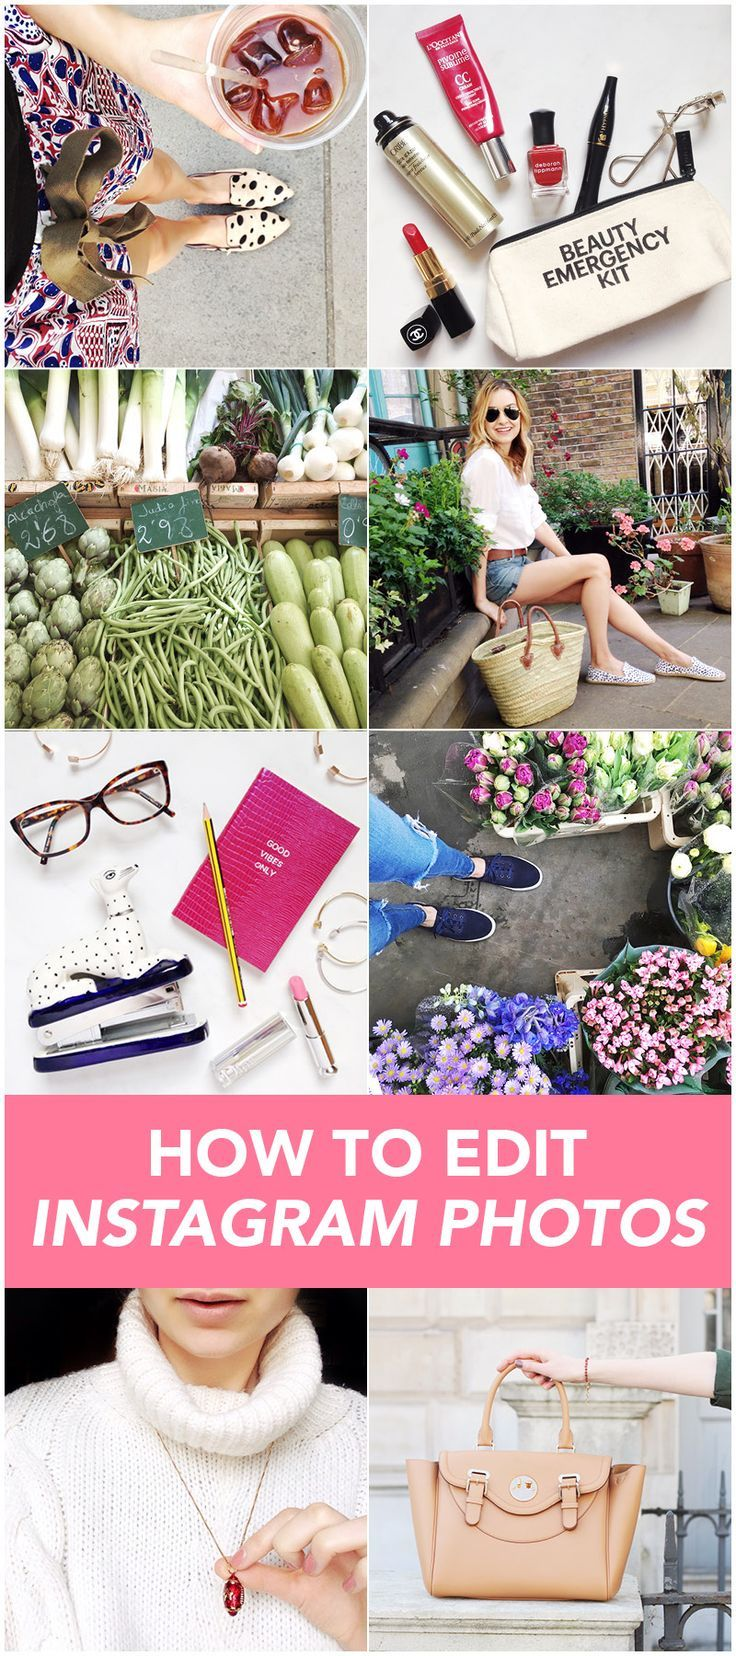 The best image editing Apps to use for Instagram. How to edit images for Instagram.